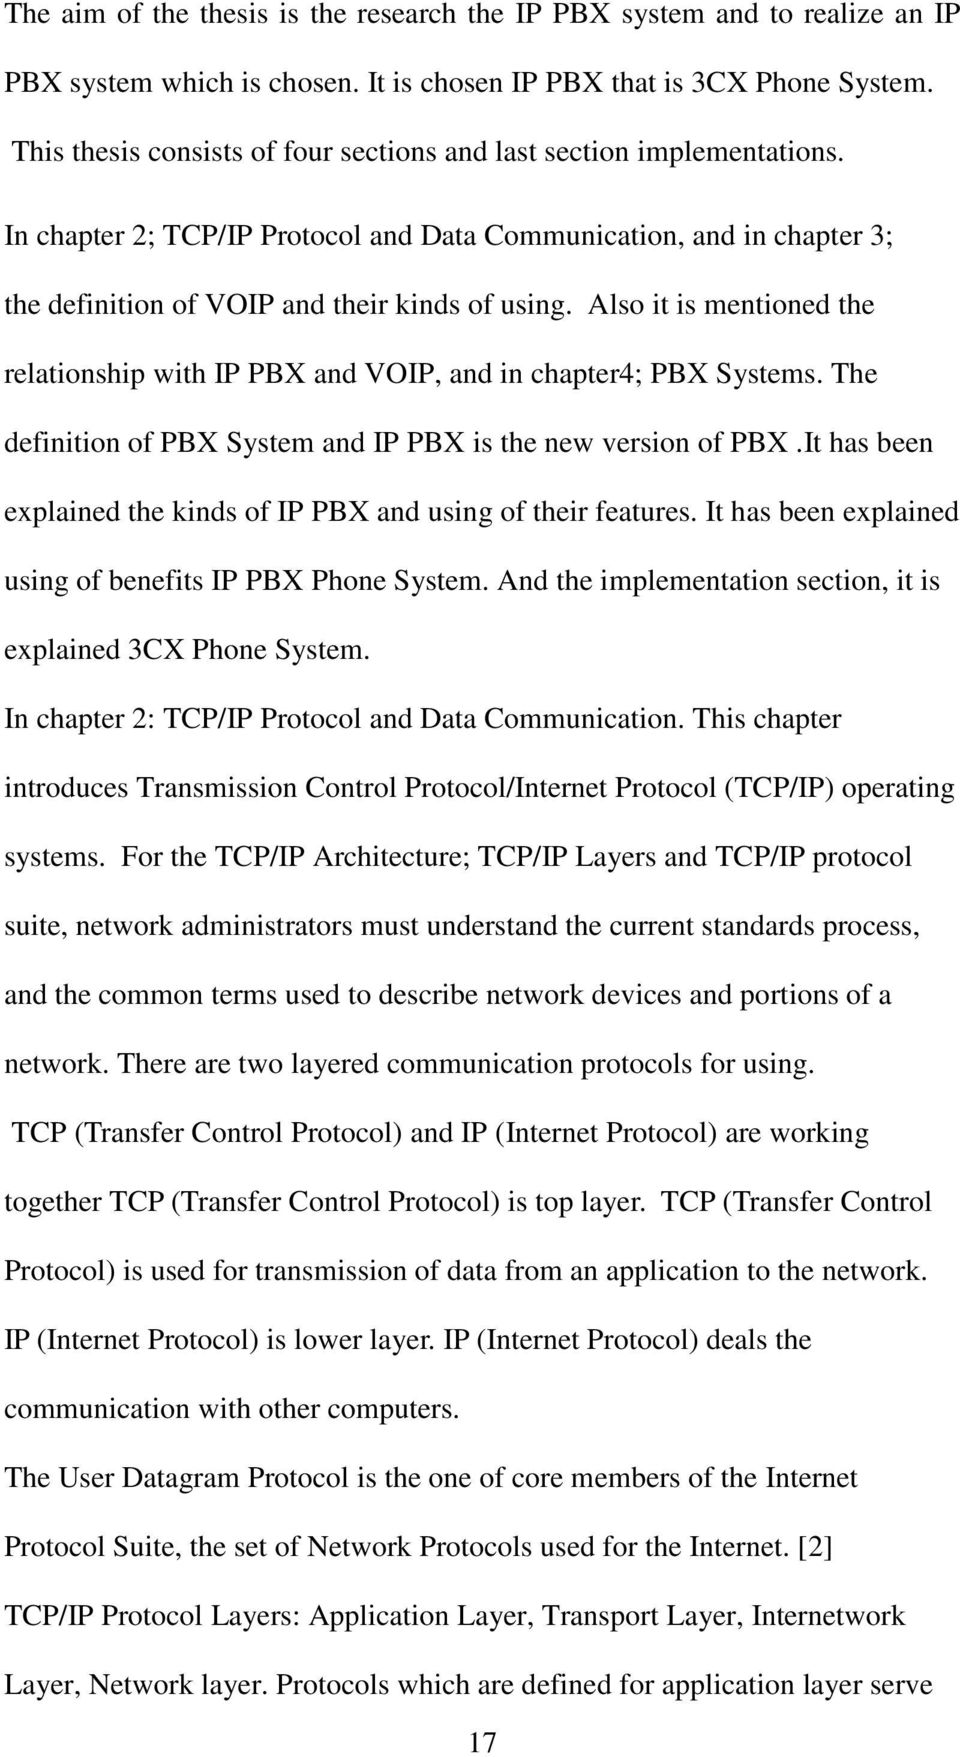 Also it is mentioned the relationship with IP PBX and VOIP, and in chapter4; PBX Systems. The definition of PBX System and IP PBX is the new version of PBX.